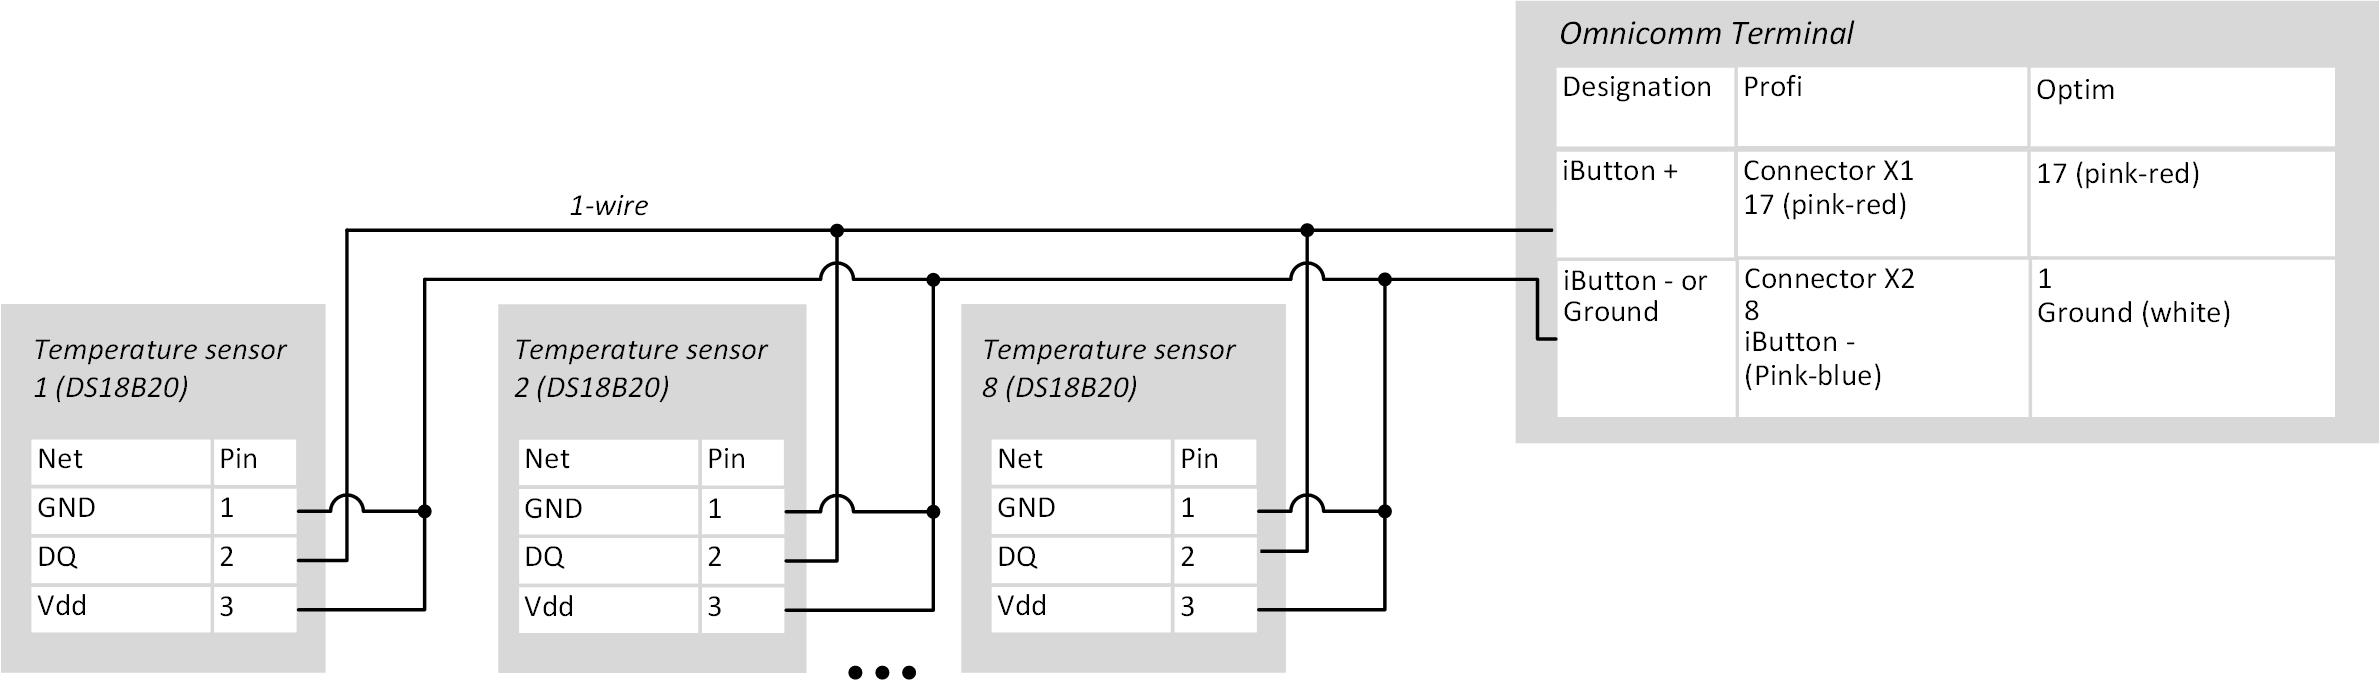 Connection of temperature sensors